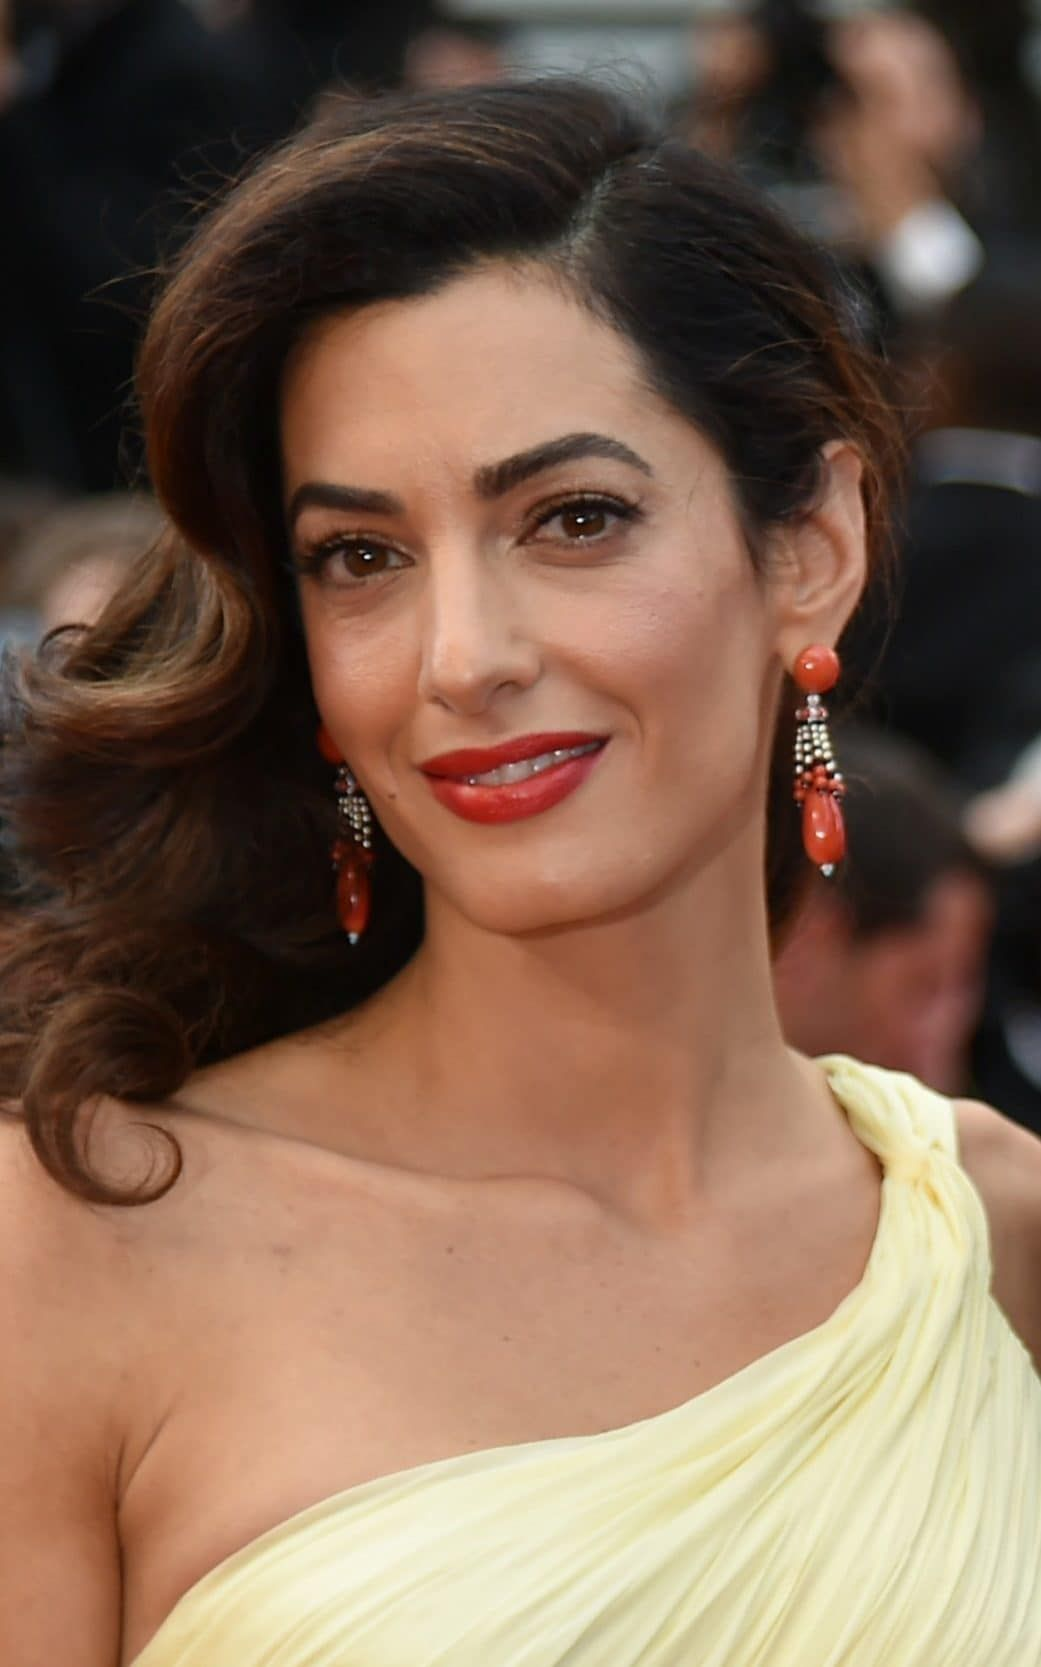 43 Fashion Lessons We Can Learn From Amal Clooney On Her 43rd Birthday Amal Clooney Amal Celebrities